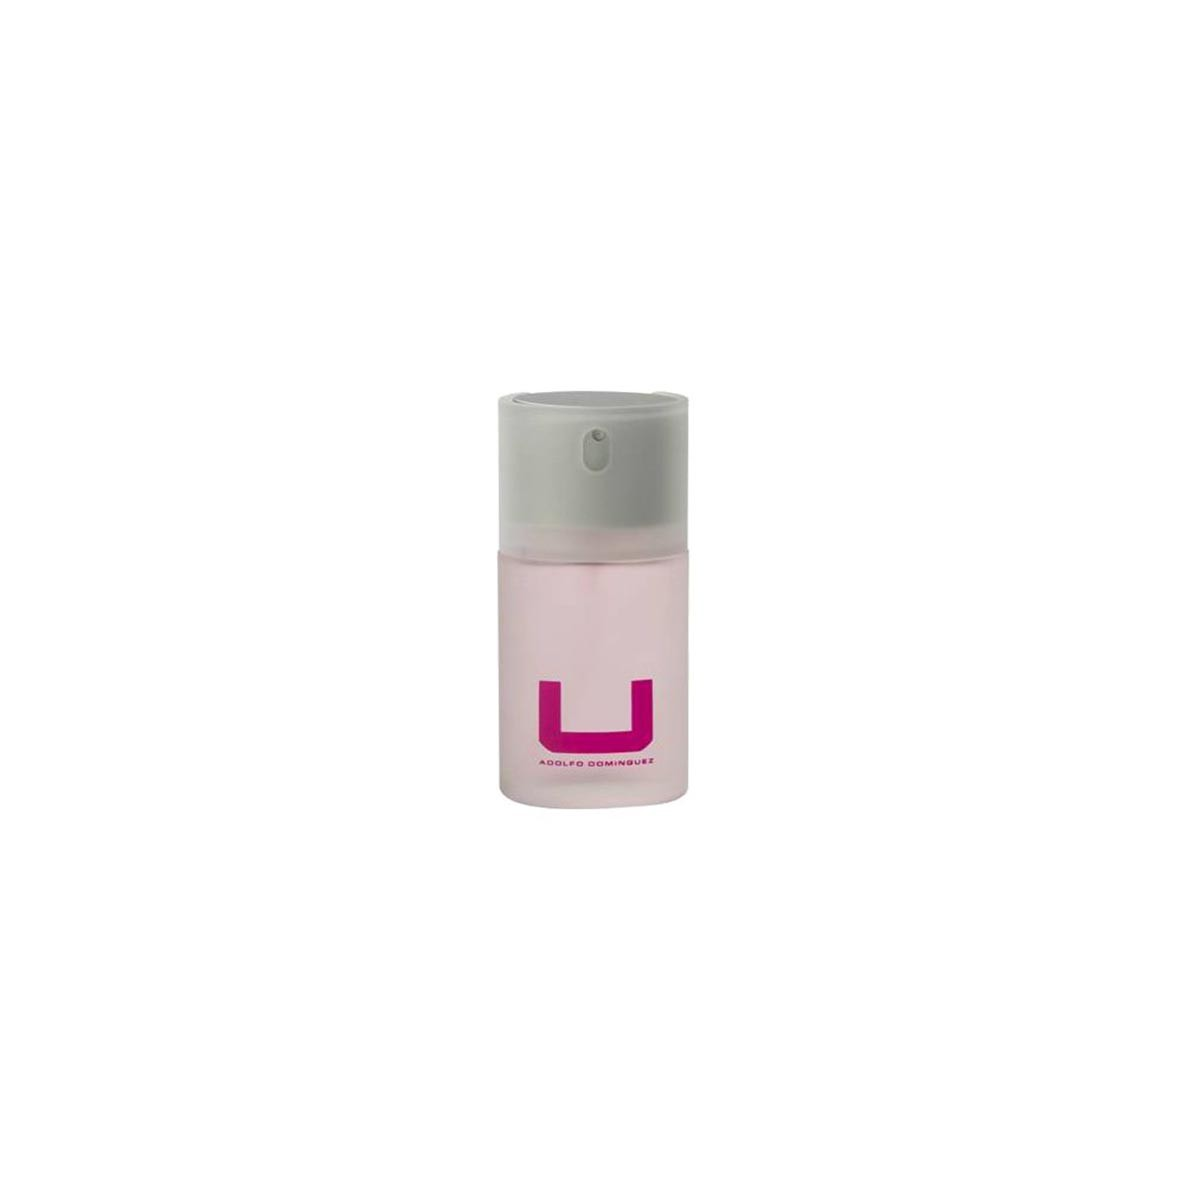 Adolfo dominguez fragrances U Eau De Toilette 75ml Vapo No Box